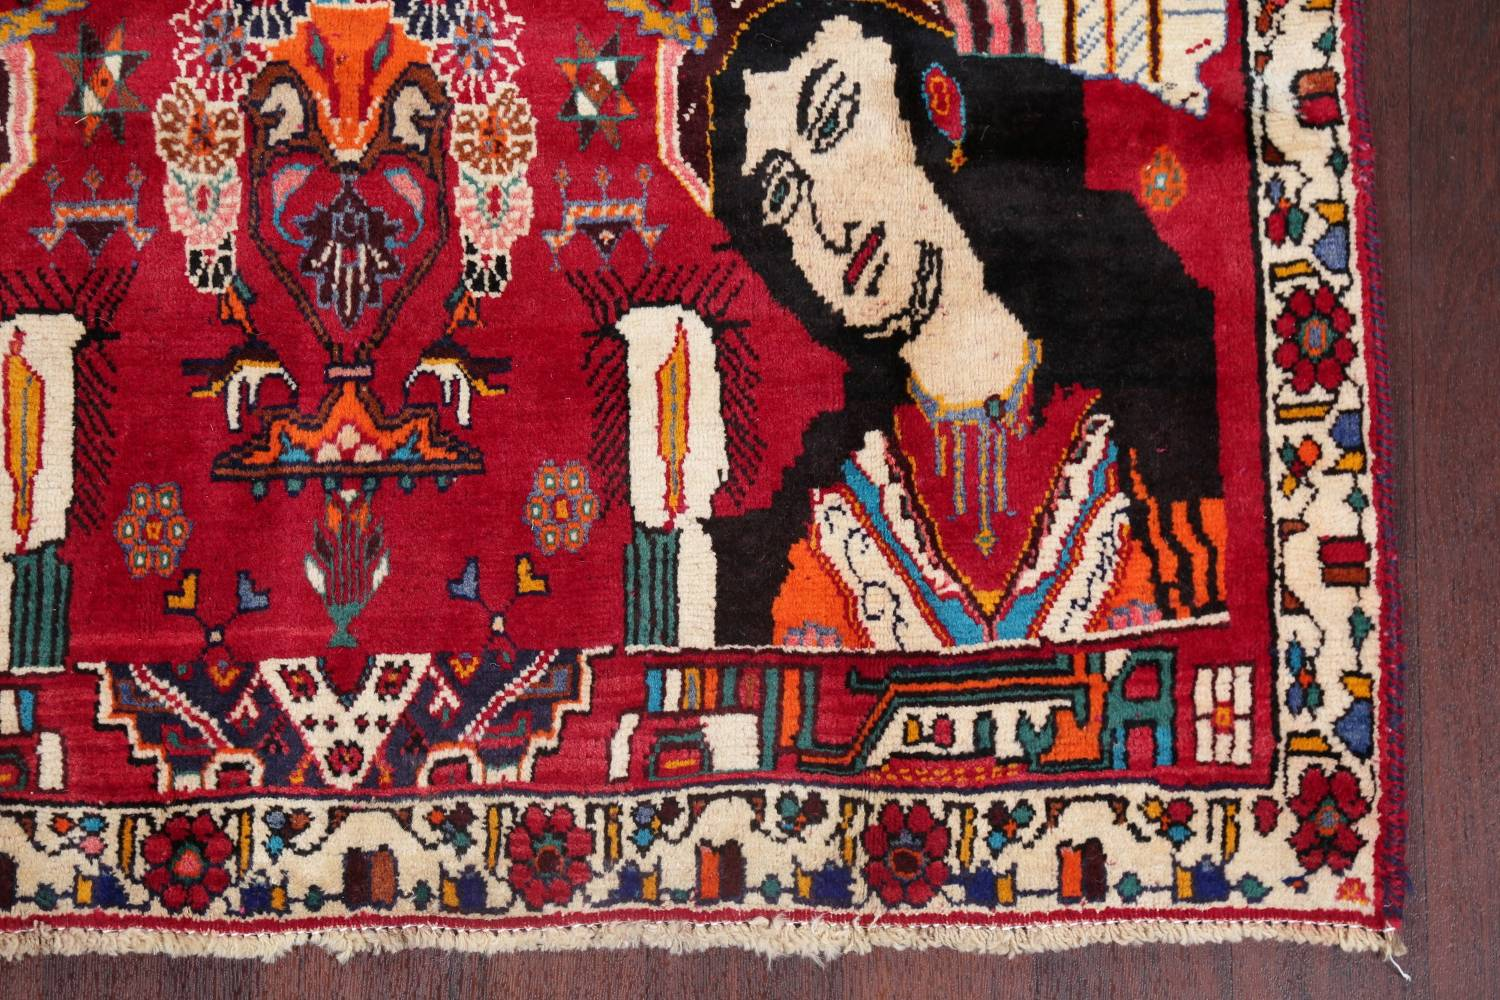 Vintage Red Pictorial Shiraz Persian Wool Rug 4x7 image 5